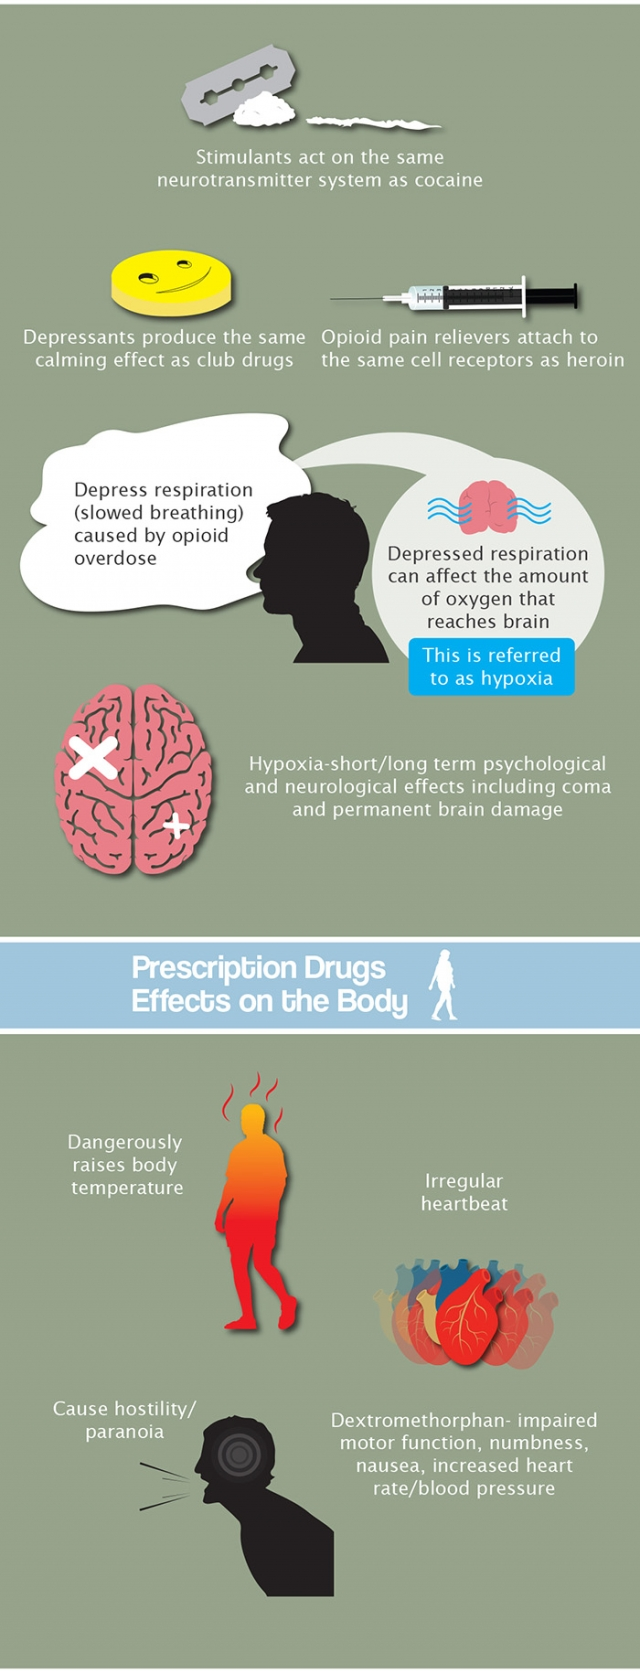 prevalence of prescription drug abuse in the us part 2